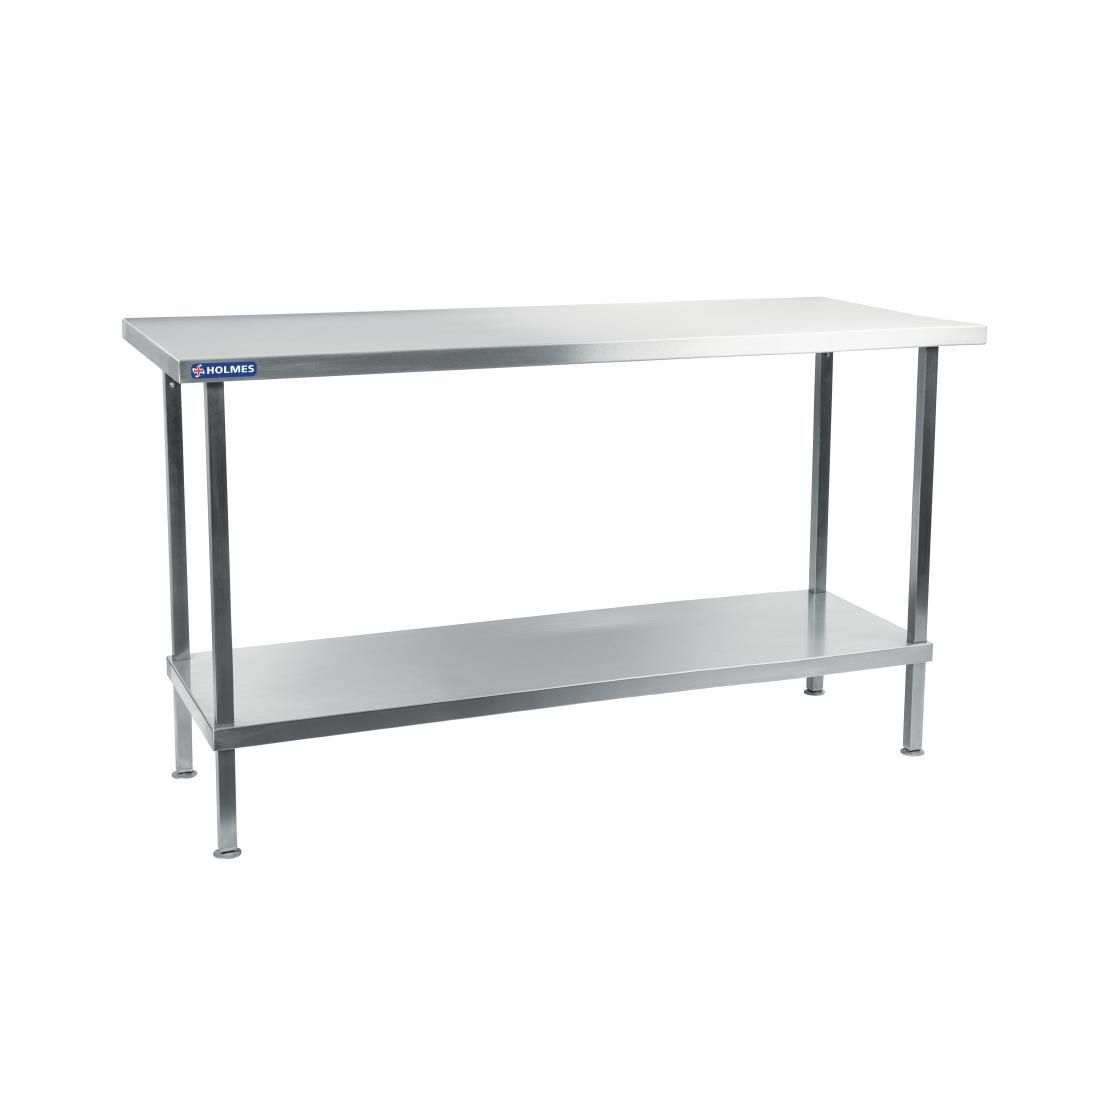 Holmes Self Assembly Stainless Steel Centre Table 600mm - DR341